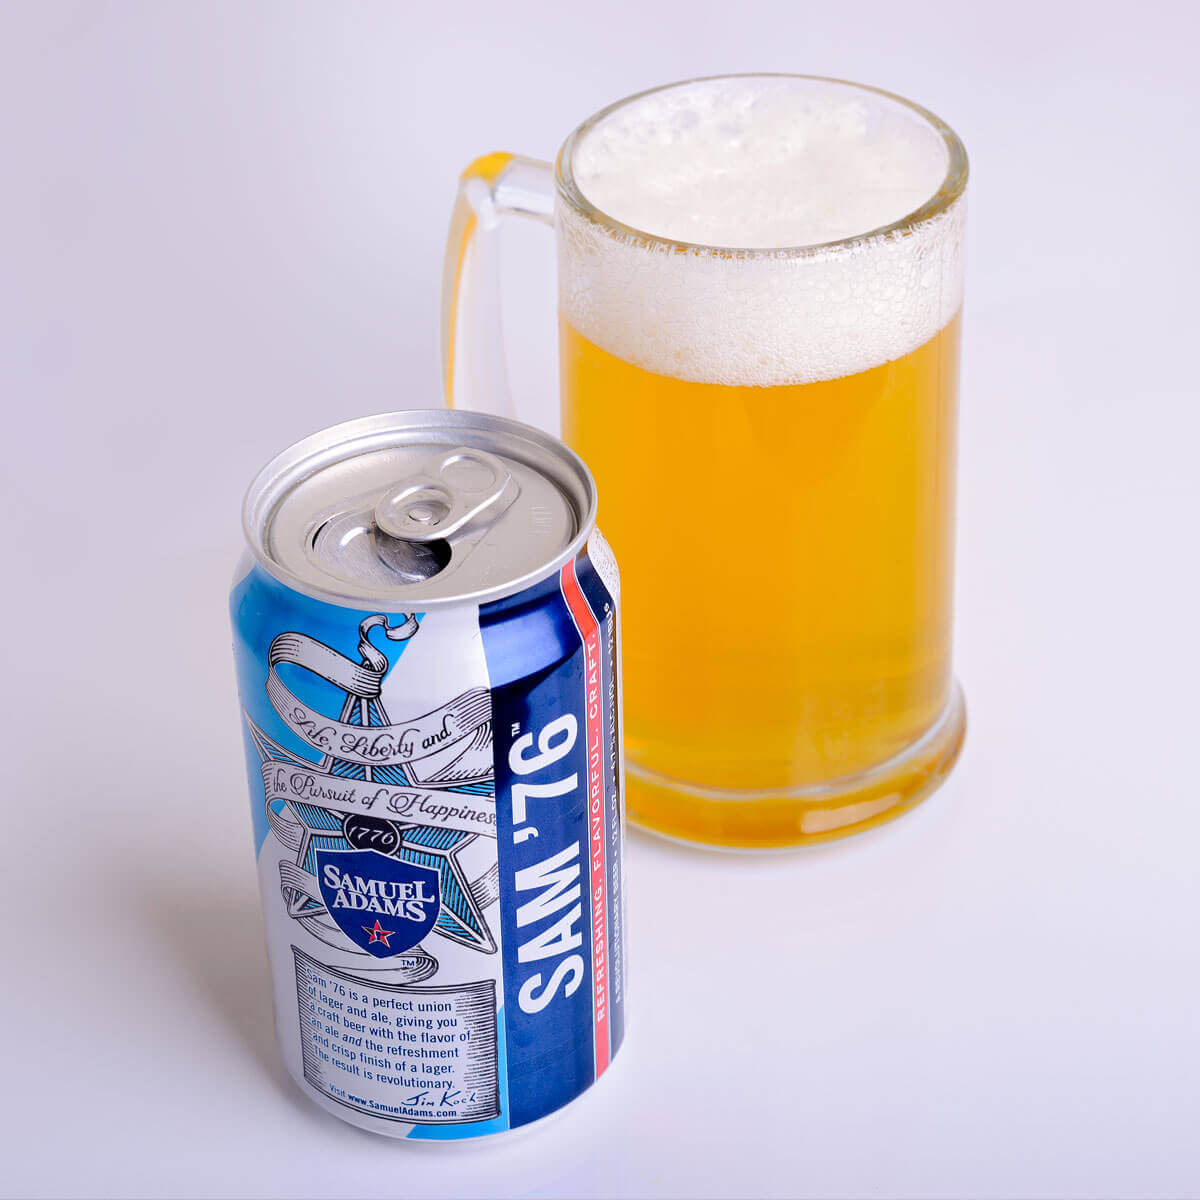 The Samuel Adams beer Sam '76 is an American Pale Lager brewed by the Boston Beer Company that features a light blend of cracker malt and honey; gently hopped with pine and citrus.